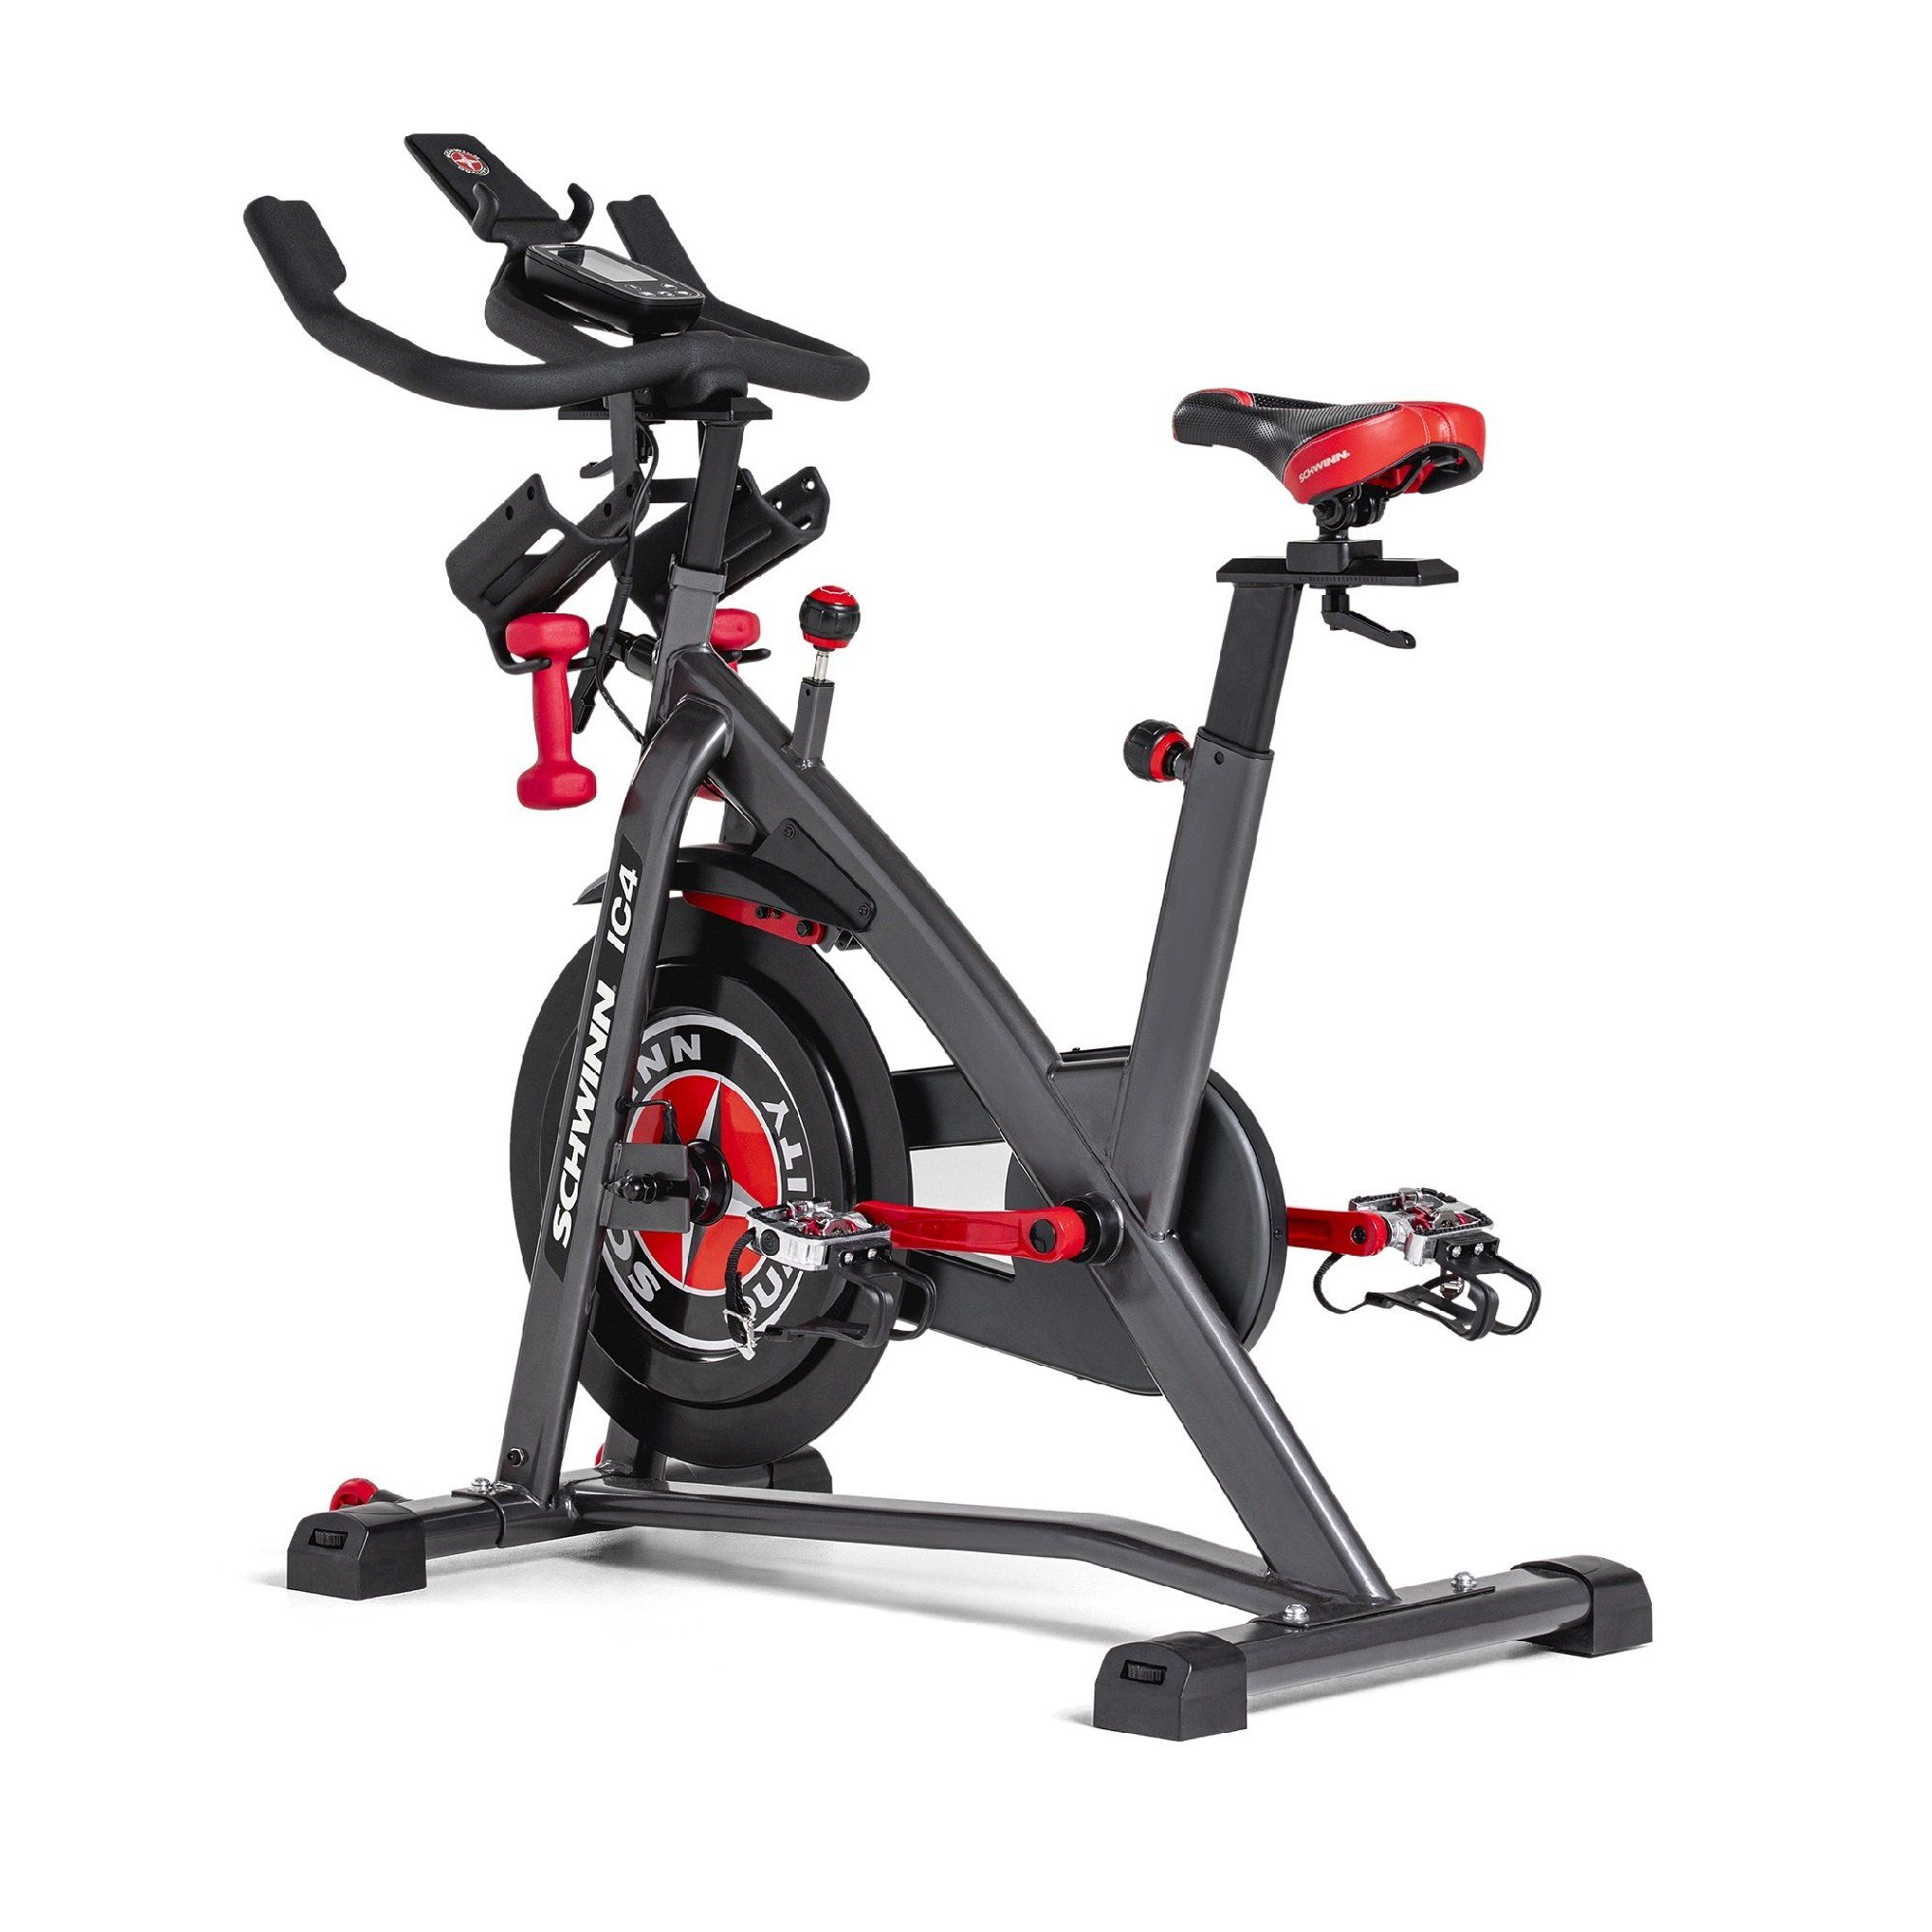 The Ic4 Indoor Cycling Bike Is A Low Impact High Energy